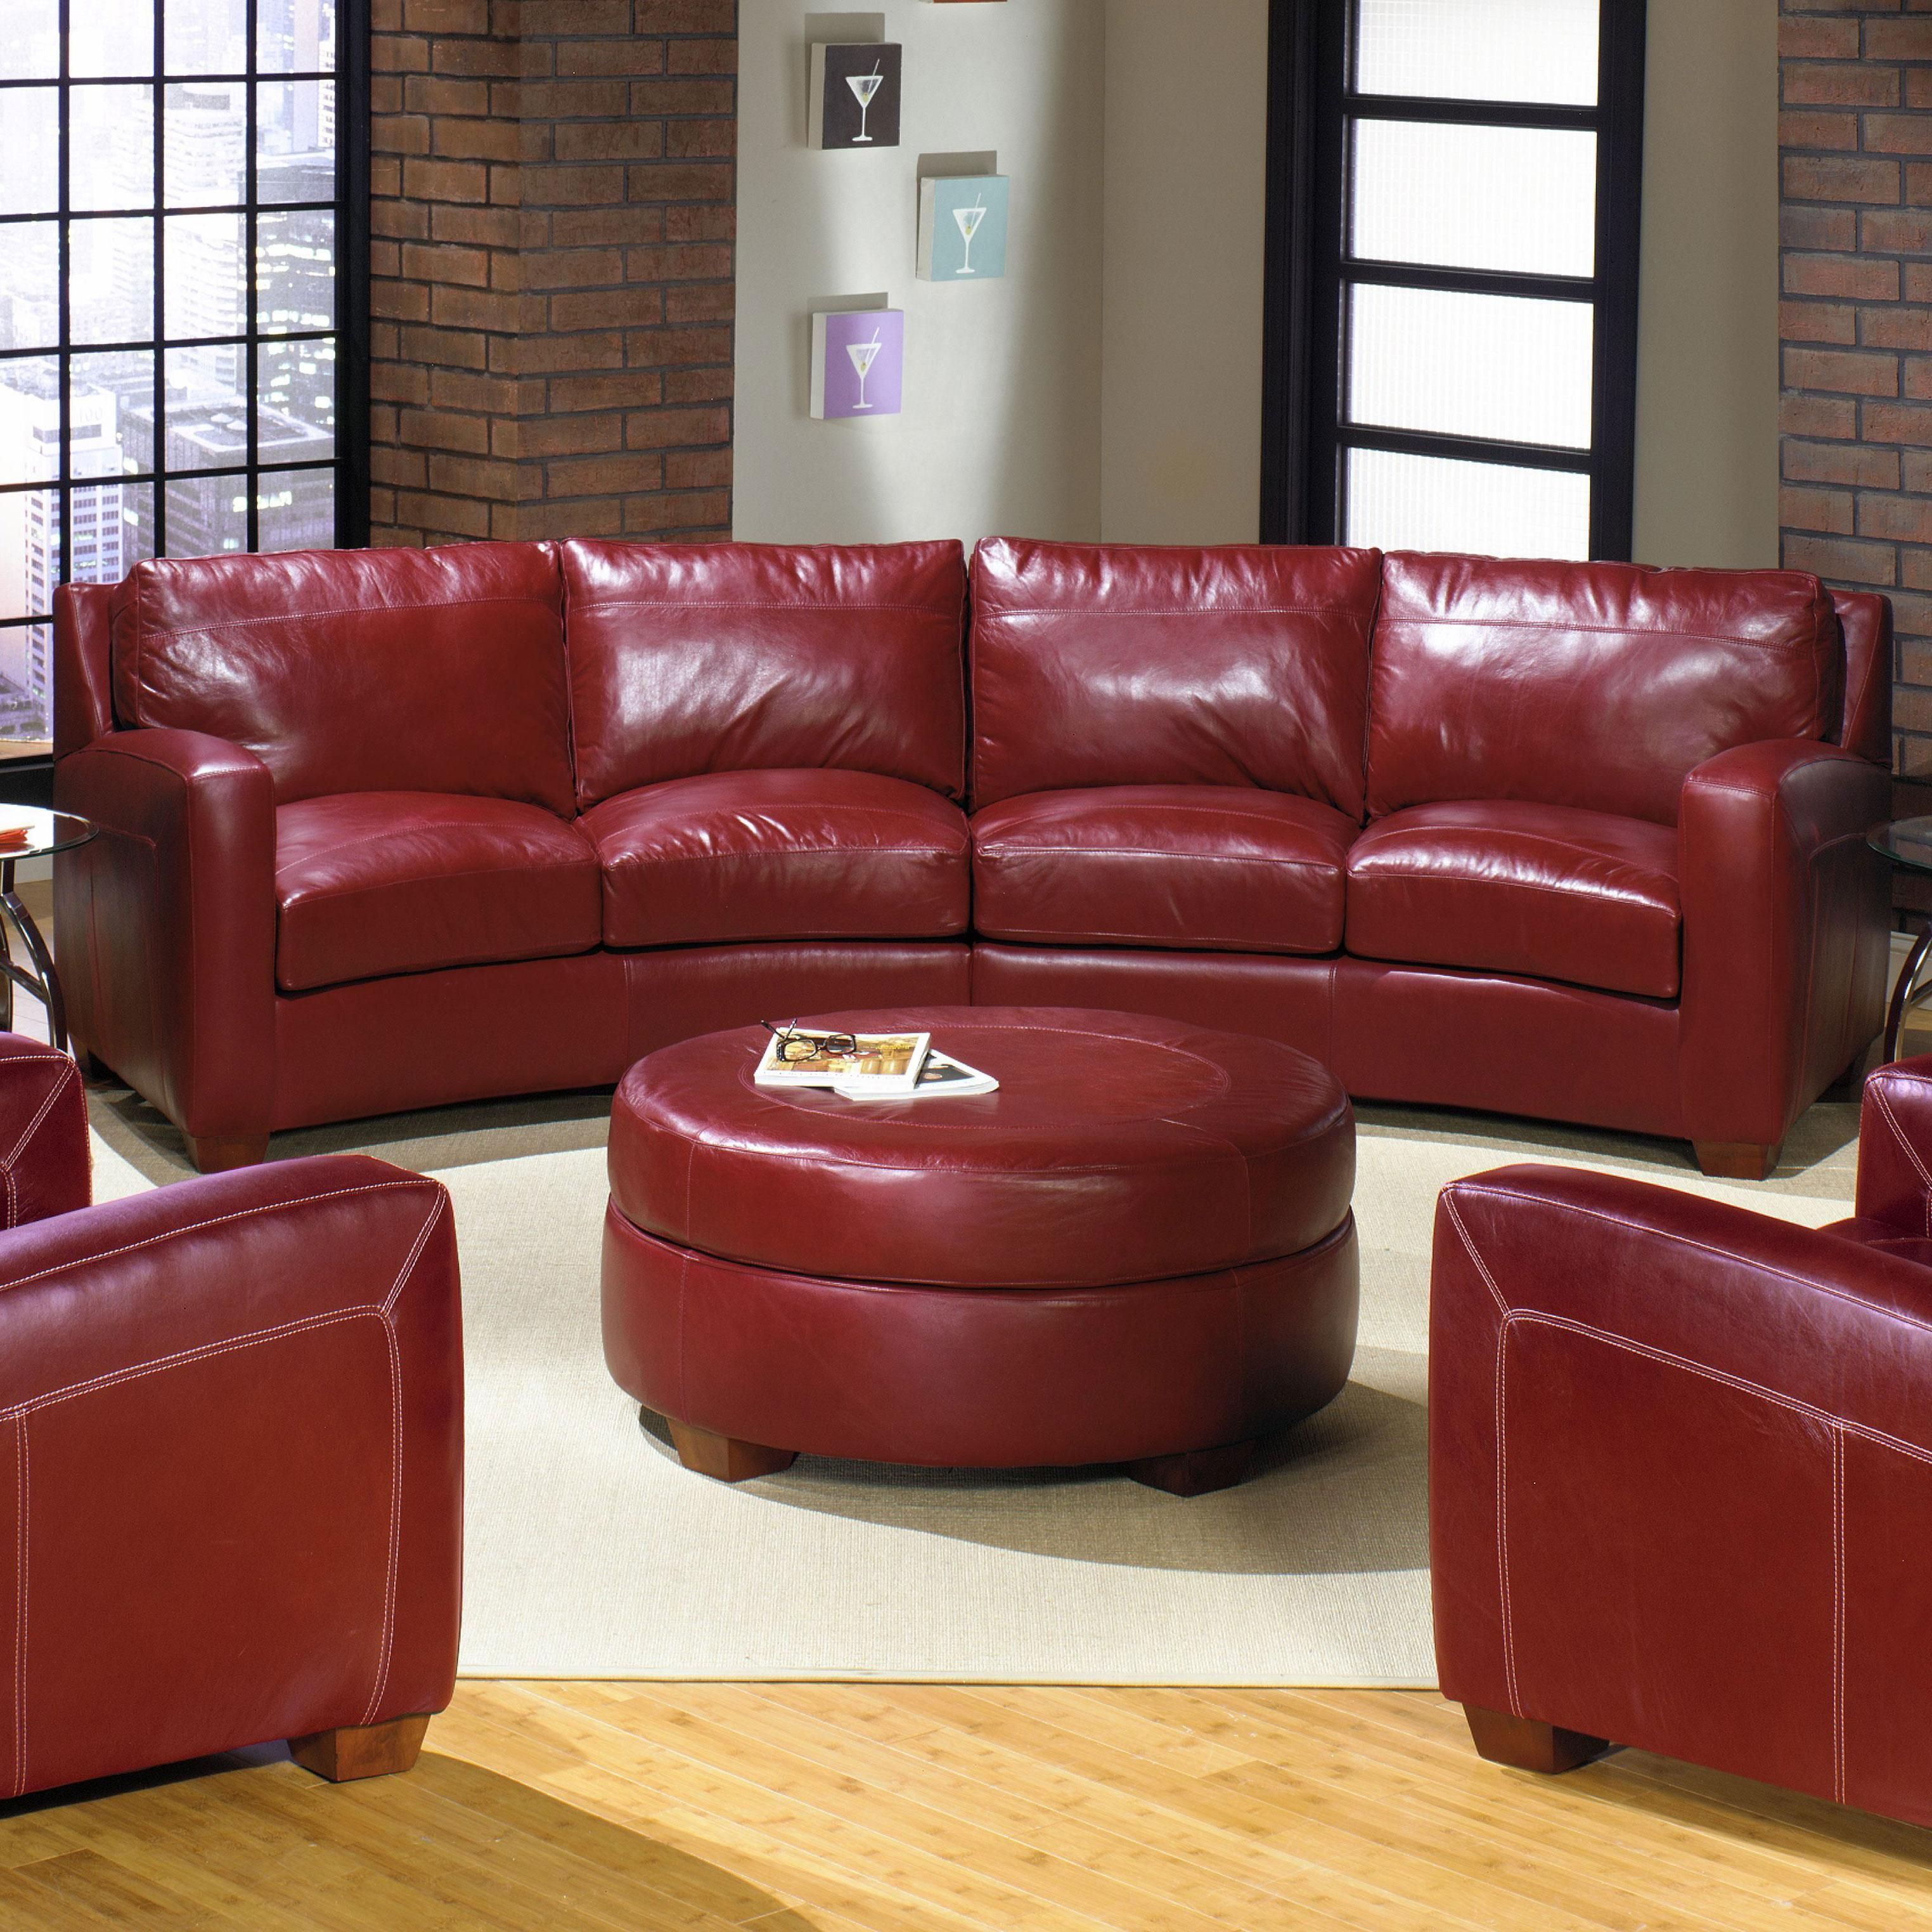 curved sectional sofa leather reclining sets with cup holders 2950 2 piece by usa premium wolf furniture